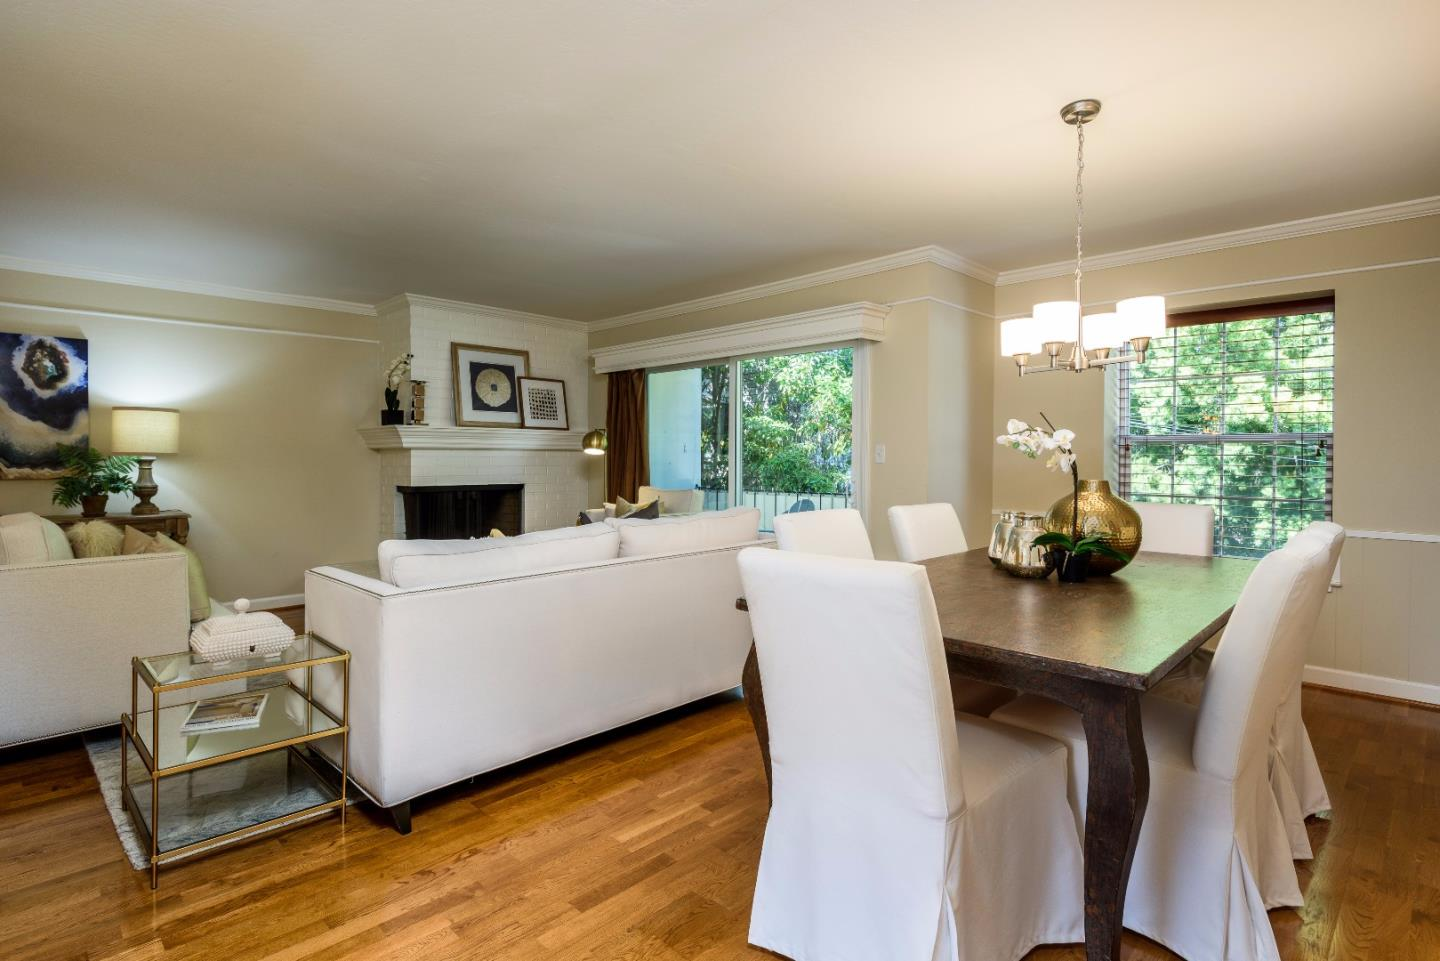 Additional photo for property listing at 445 Oak Grove 11  MENLO PARK, CALIFORNIA 94025